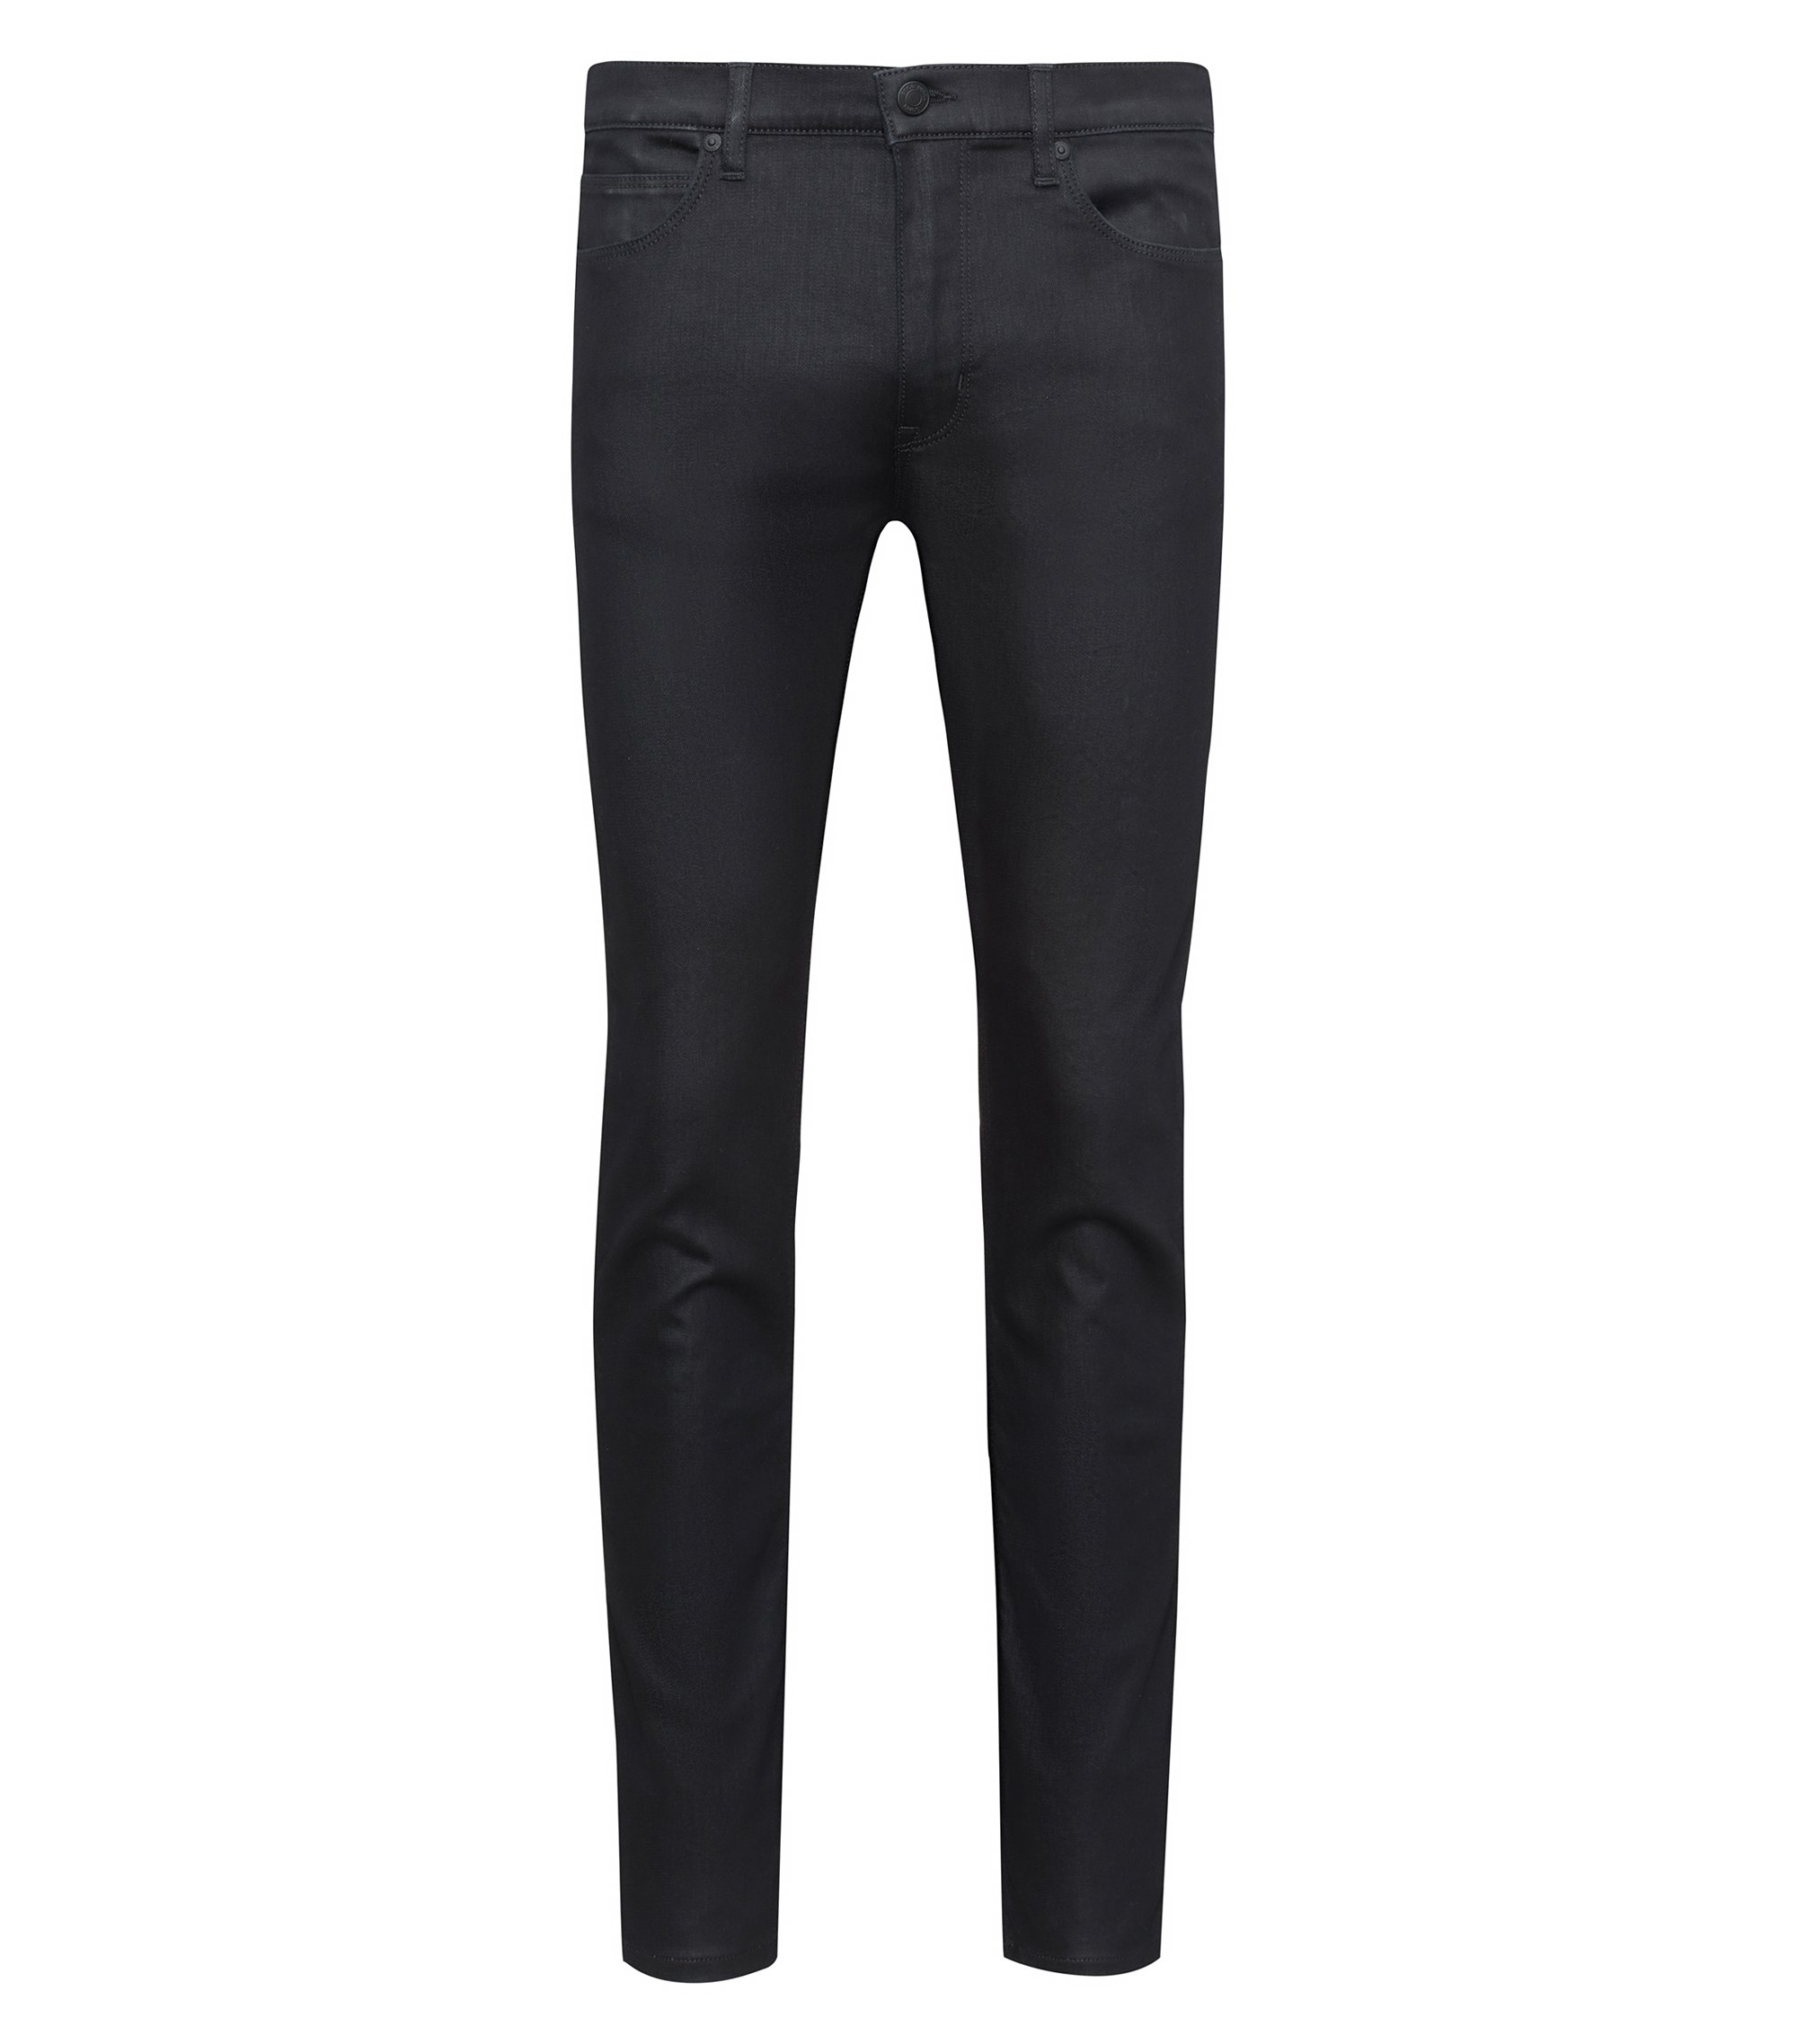 Skinny-fit black jeans with contrast stripe, Black